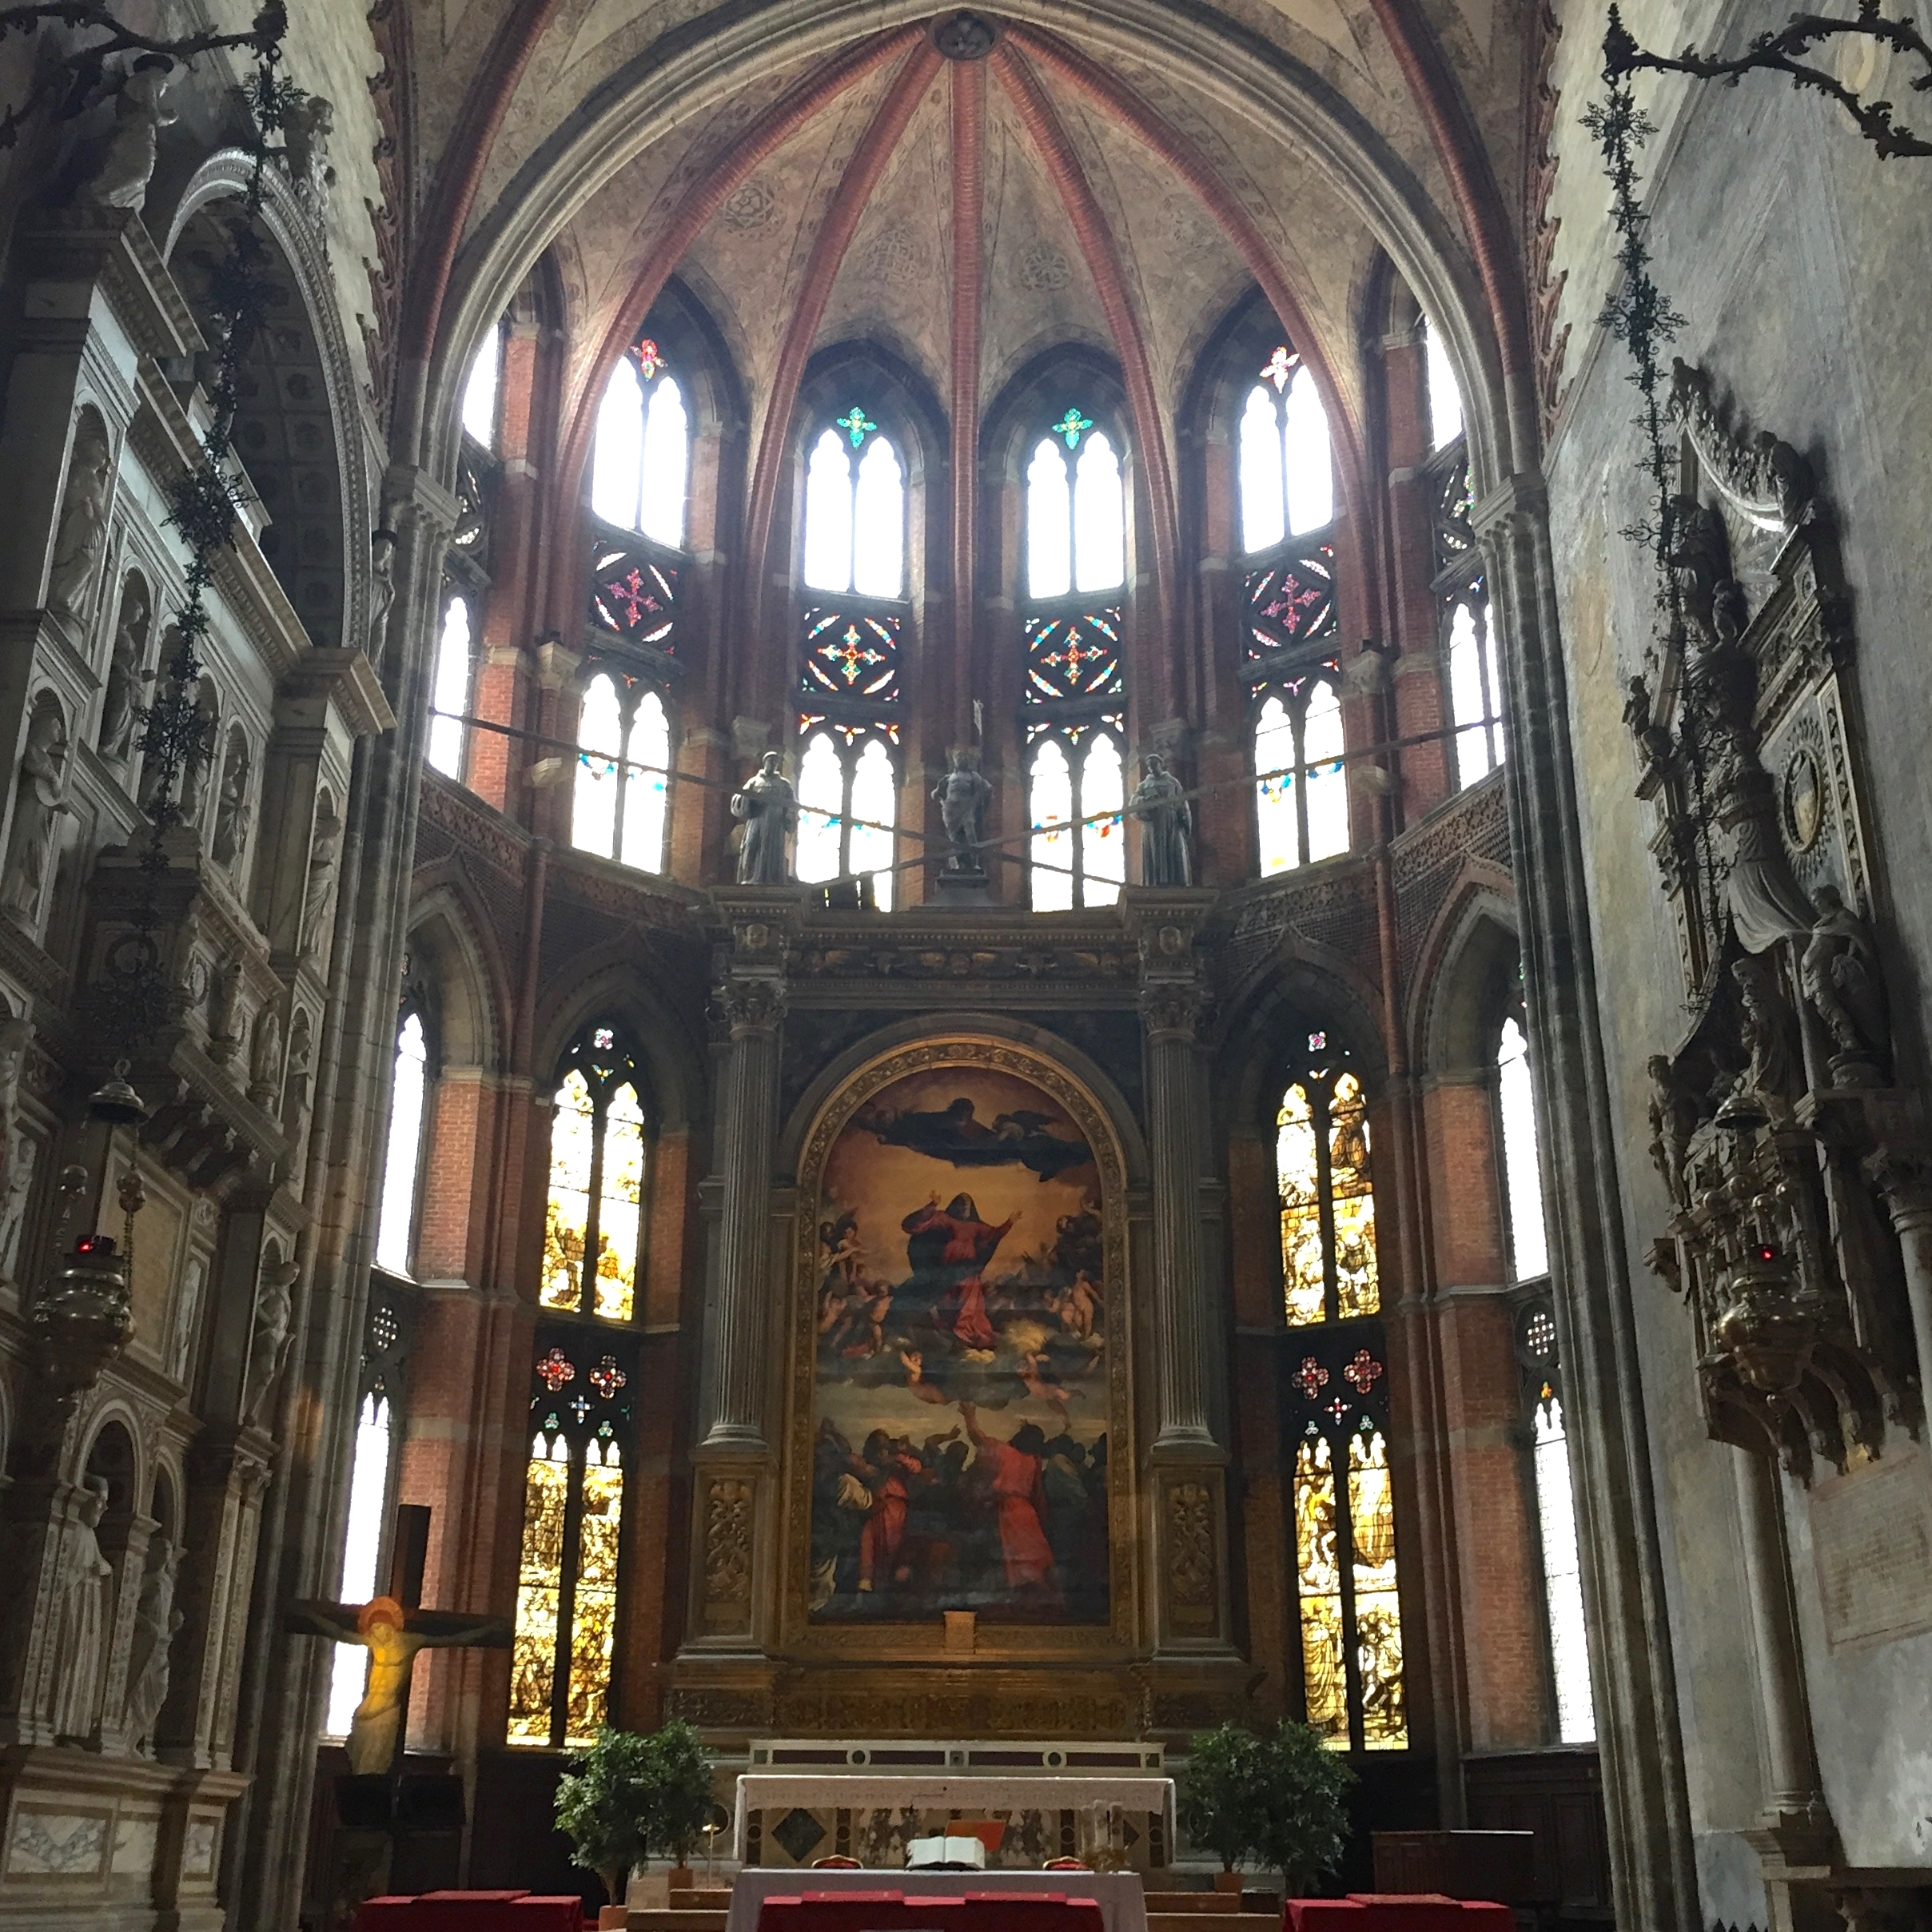 View of the stained glass windows and altarpiece in the Basilica dei Frari.